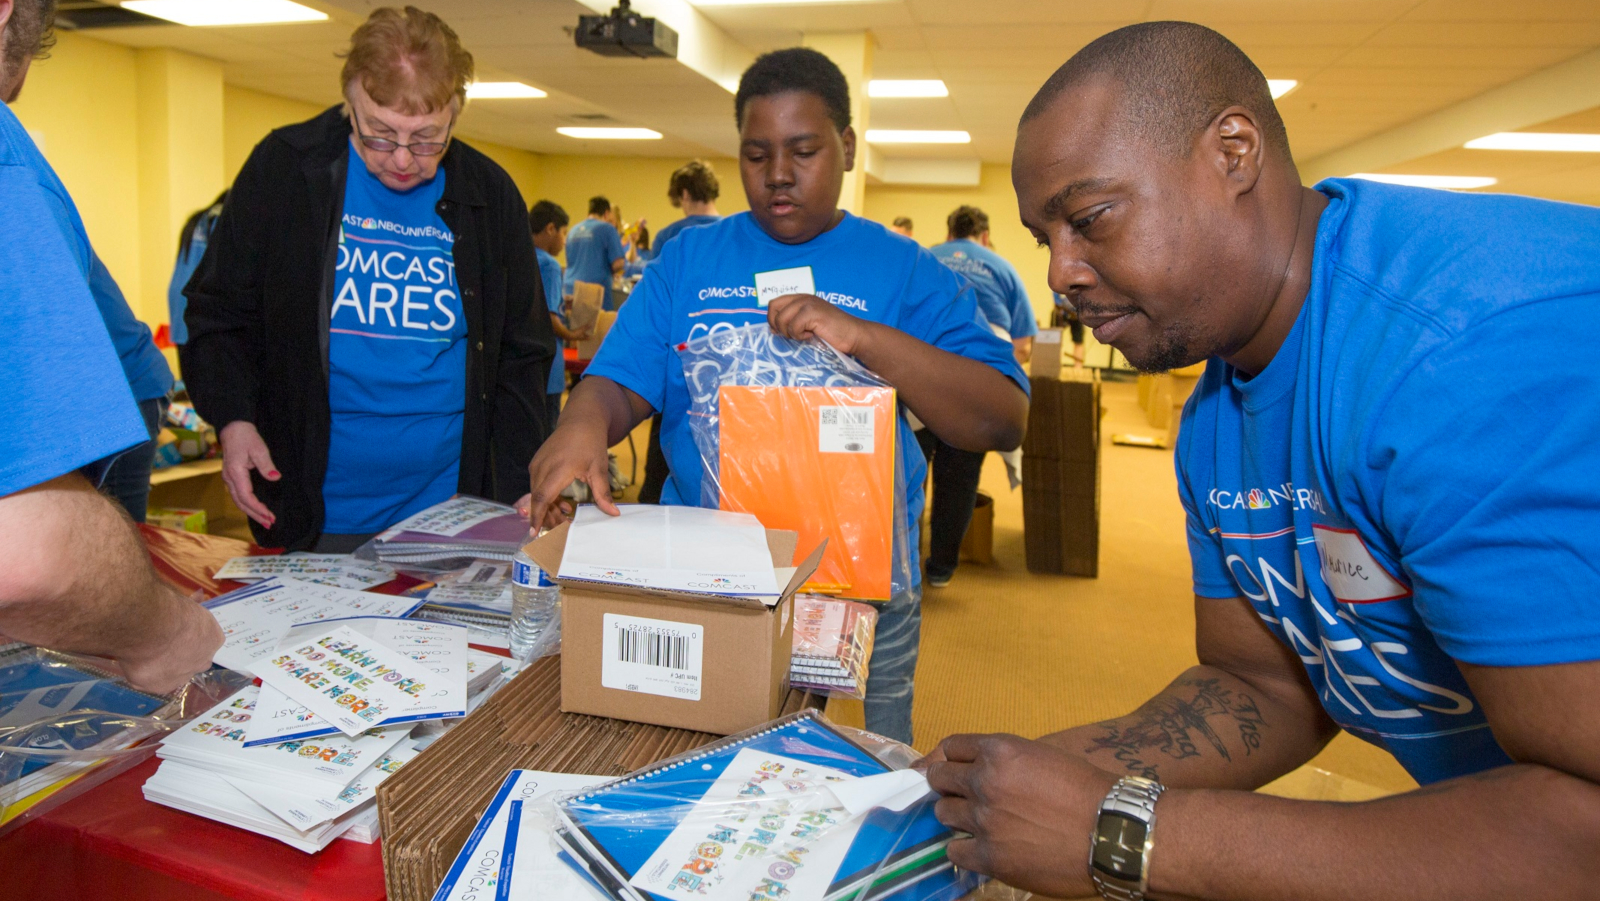 Comcast Cares Day volunteers pack homework kits for young students.